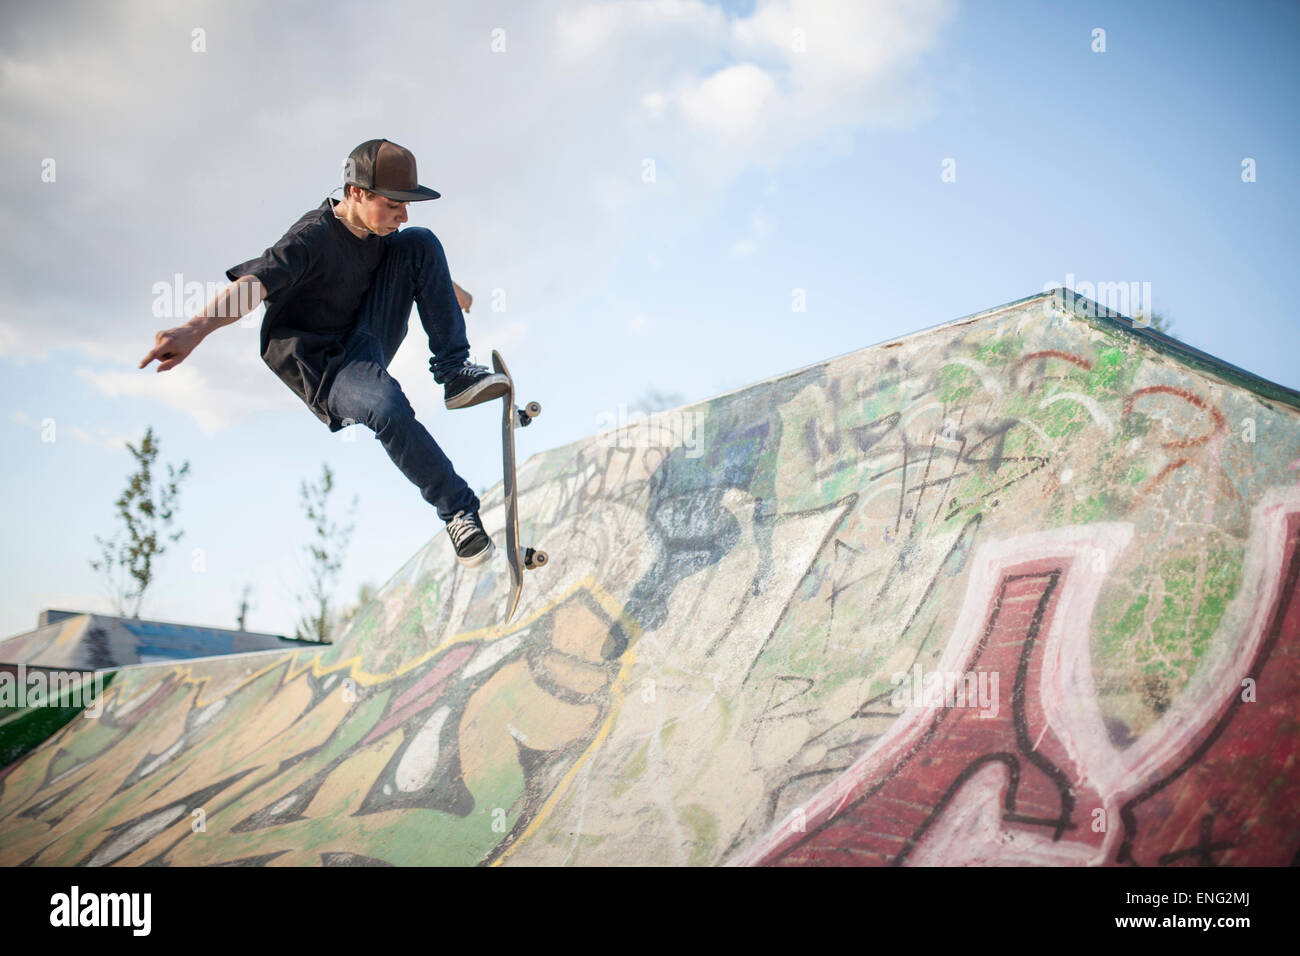 Caucasian man skating at skate park - Stock Image